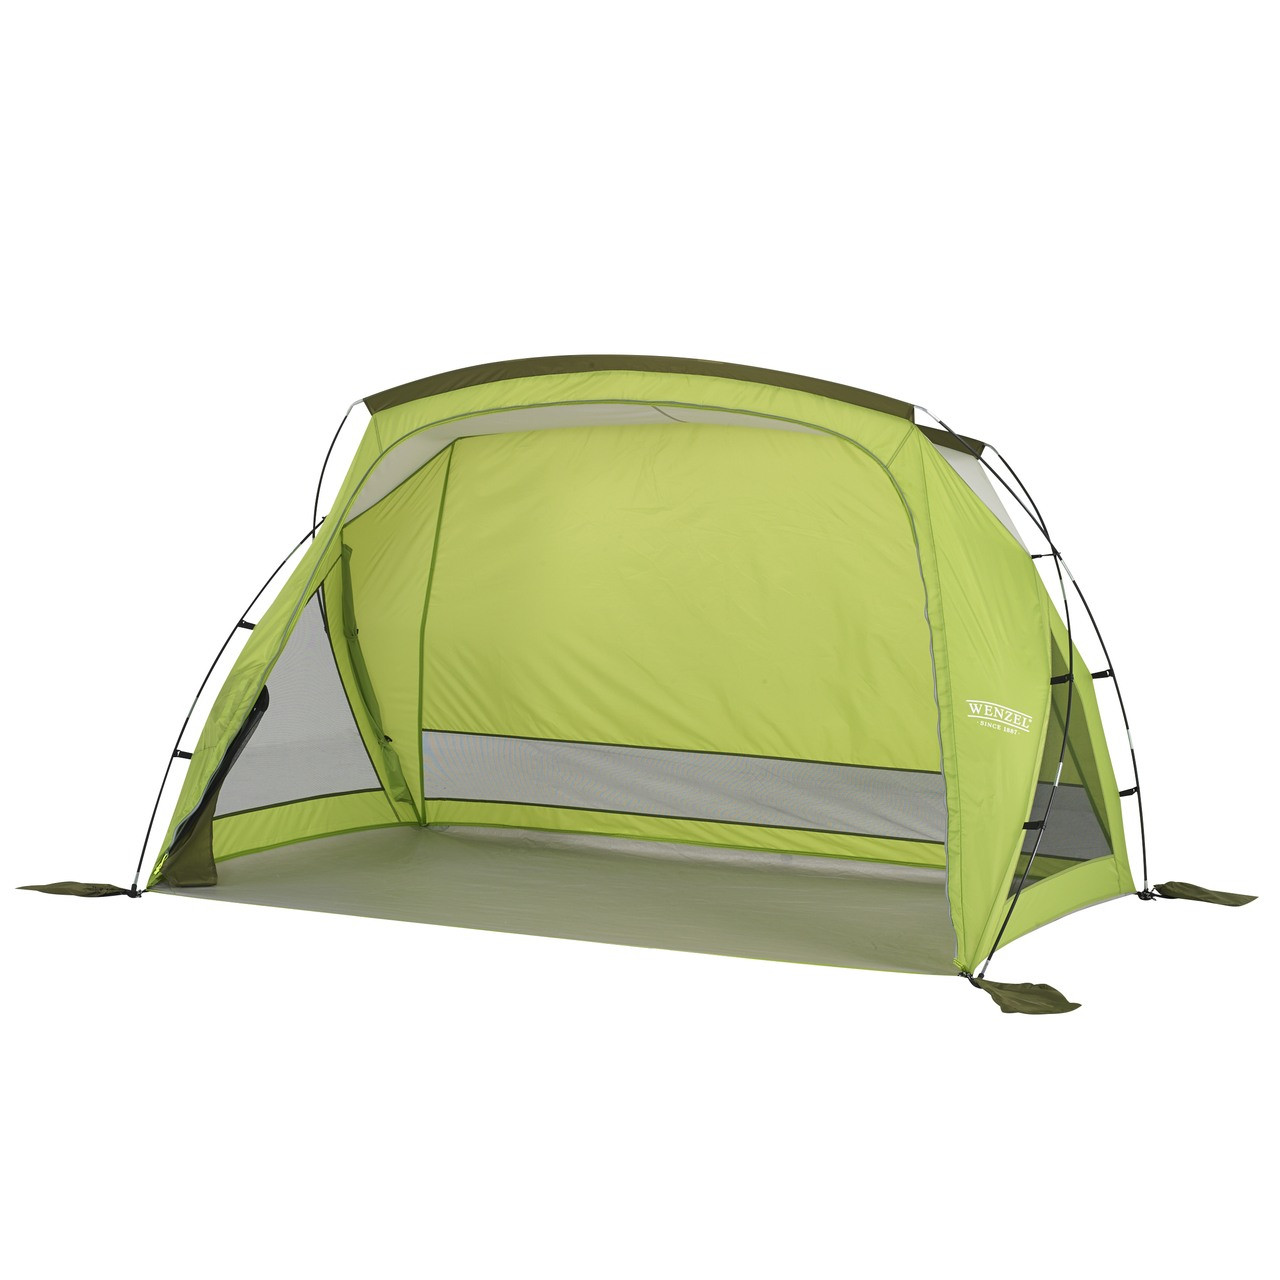 Wenzel Grotto shelter tent, green, setup with the main screen door open